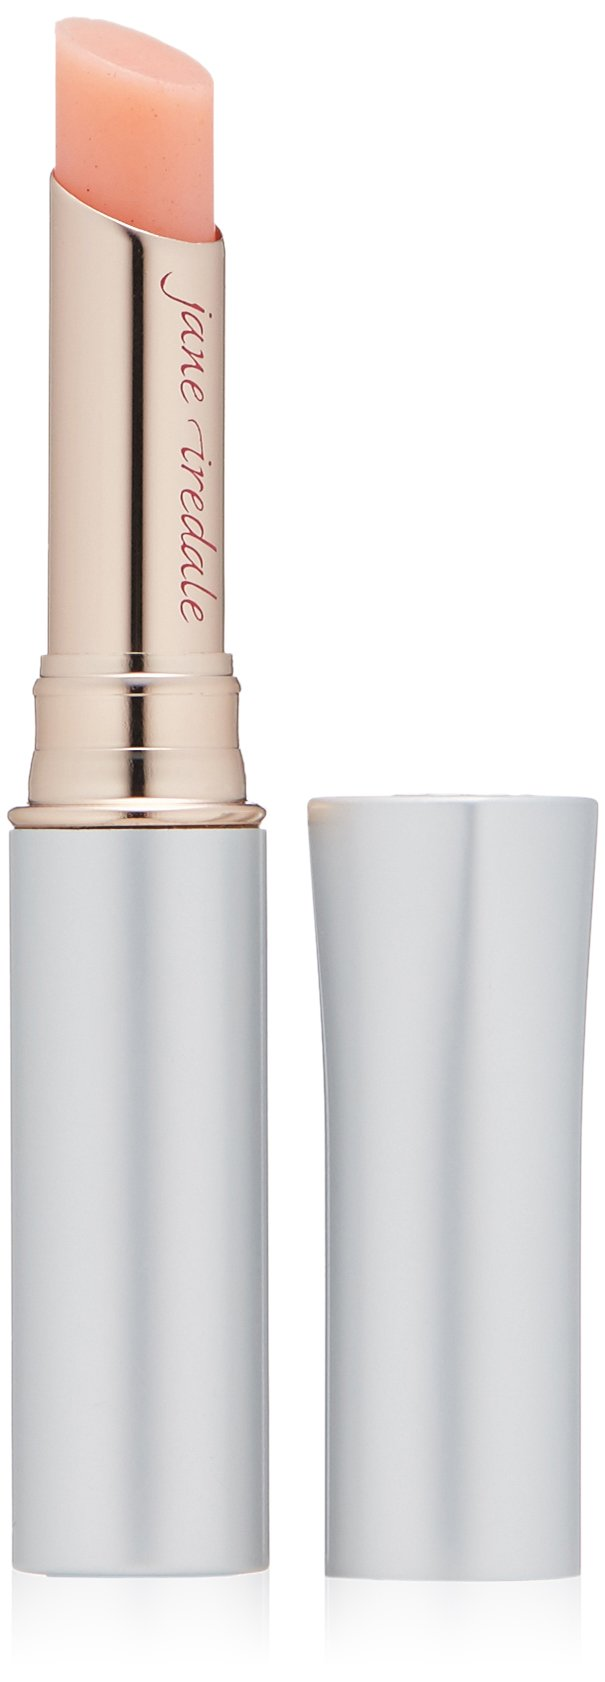 jane iredale Just Kissed Lip and Cheek Stain, Forever Pink, 0.10 oz. by jane iredale